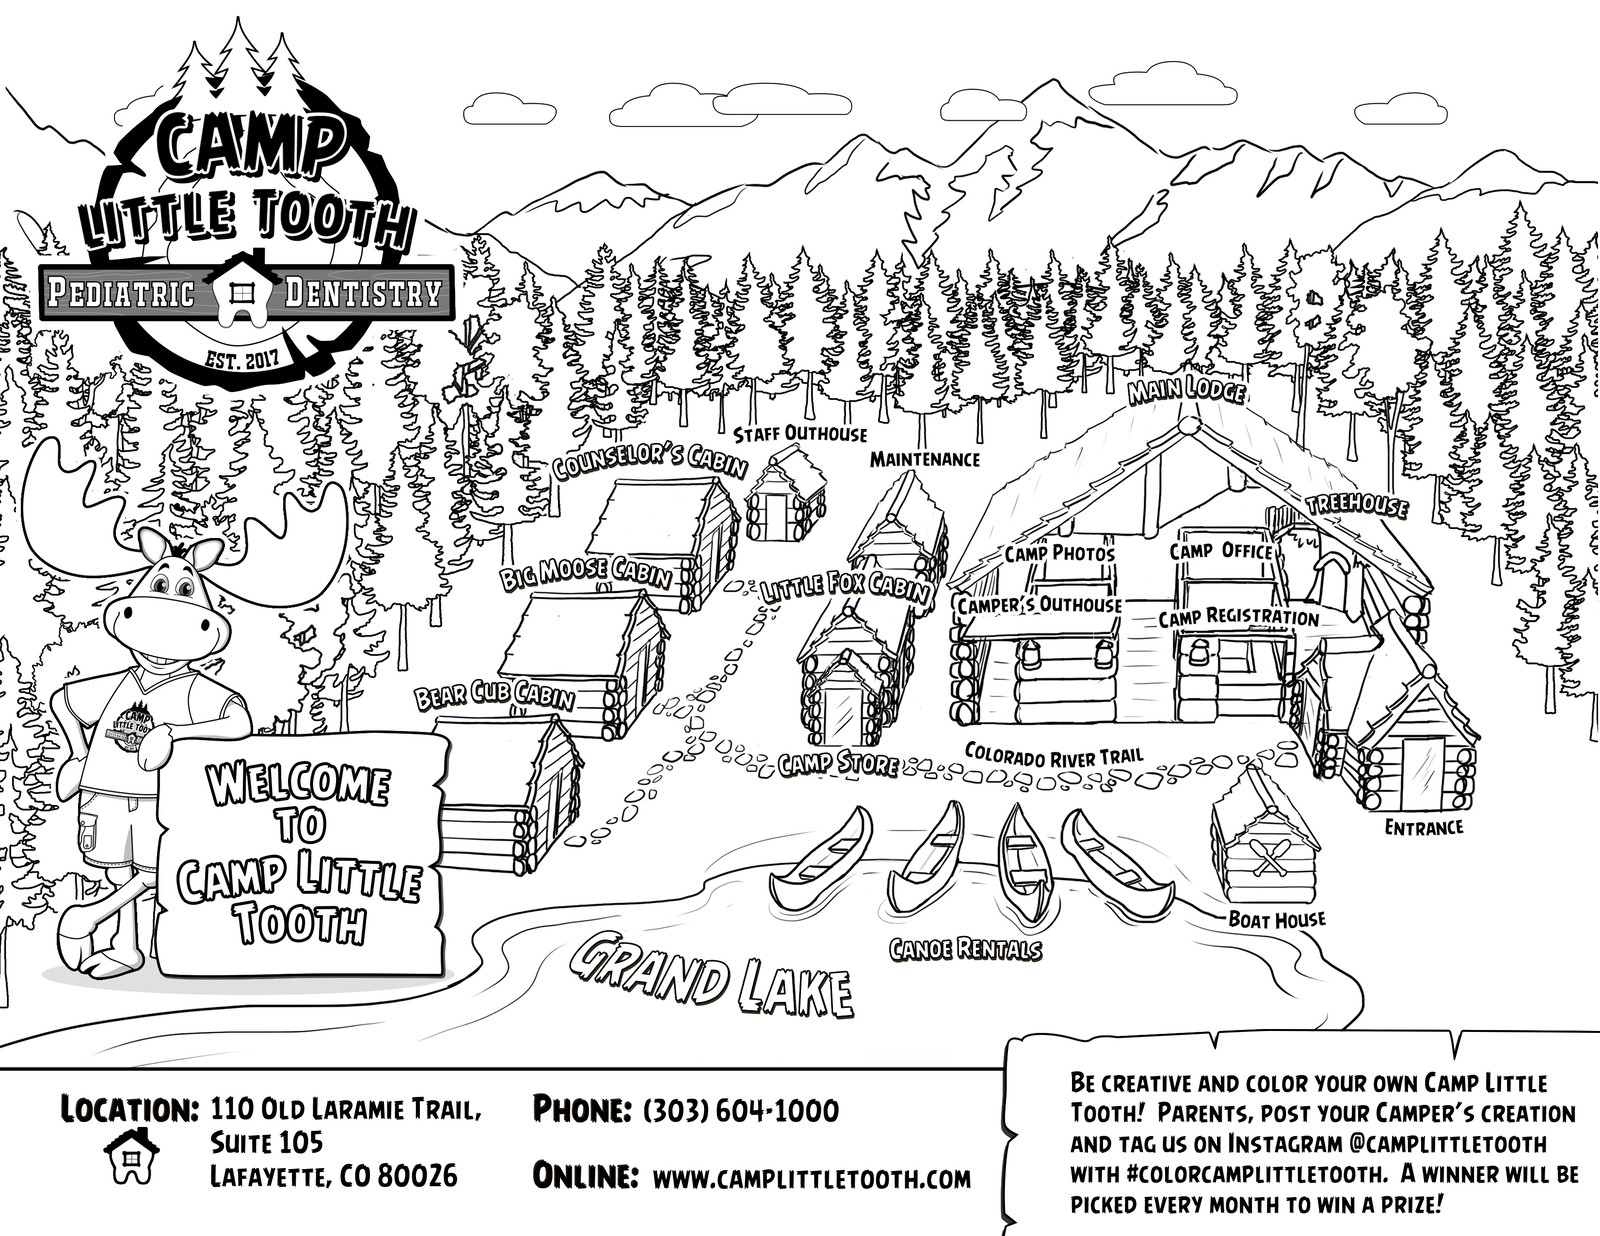 Camp Little Tooth office map (coloring sheet version)